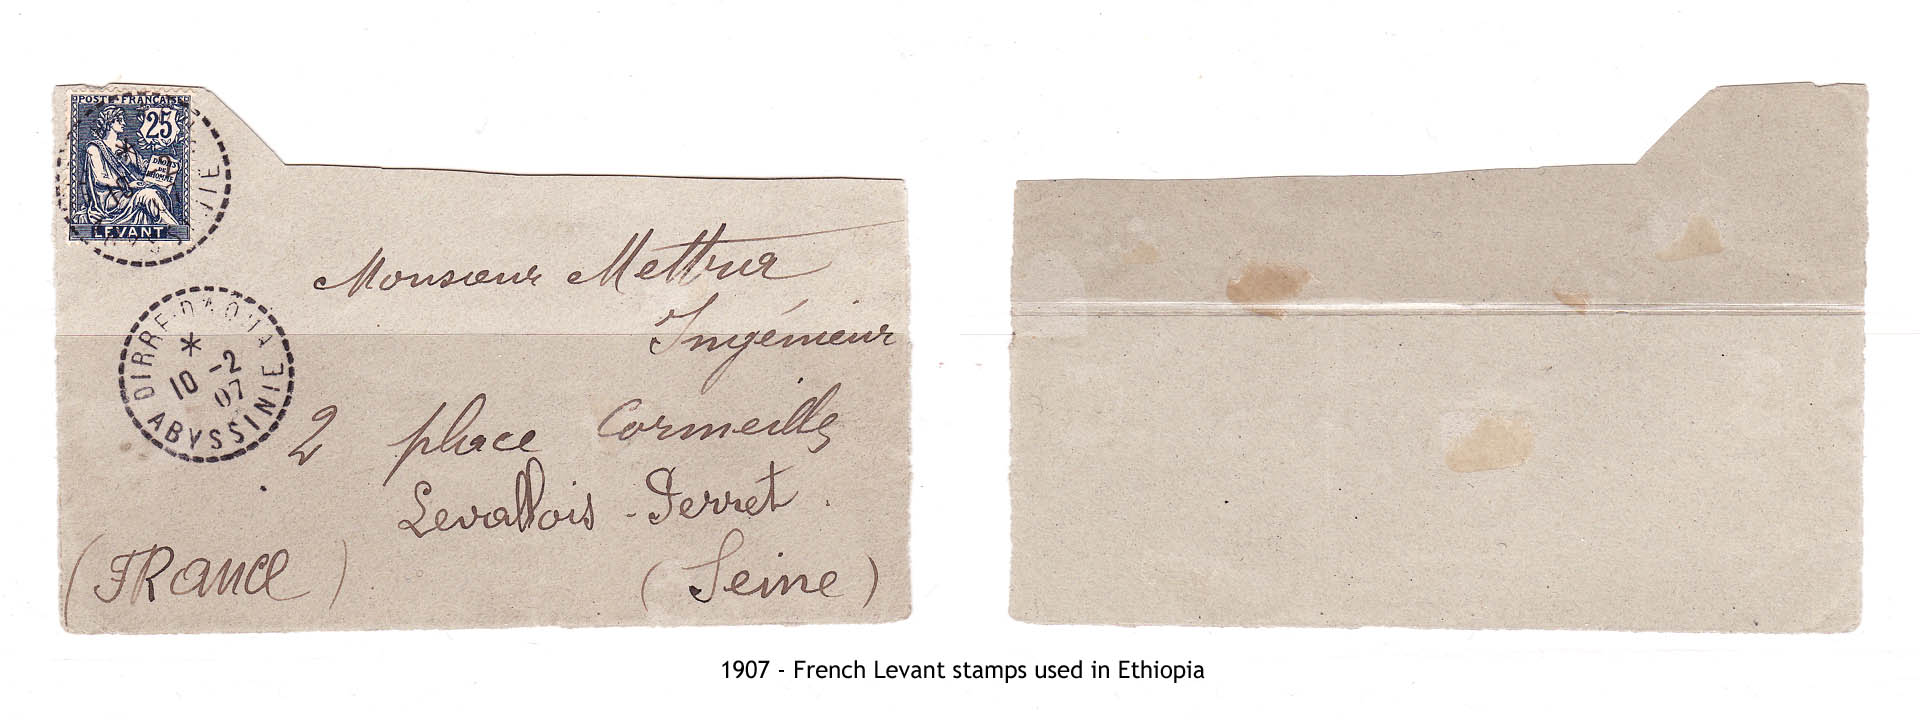 1907 - French Levant stamps used in Ethiopia